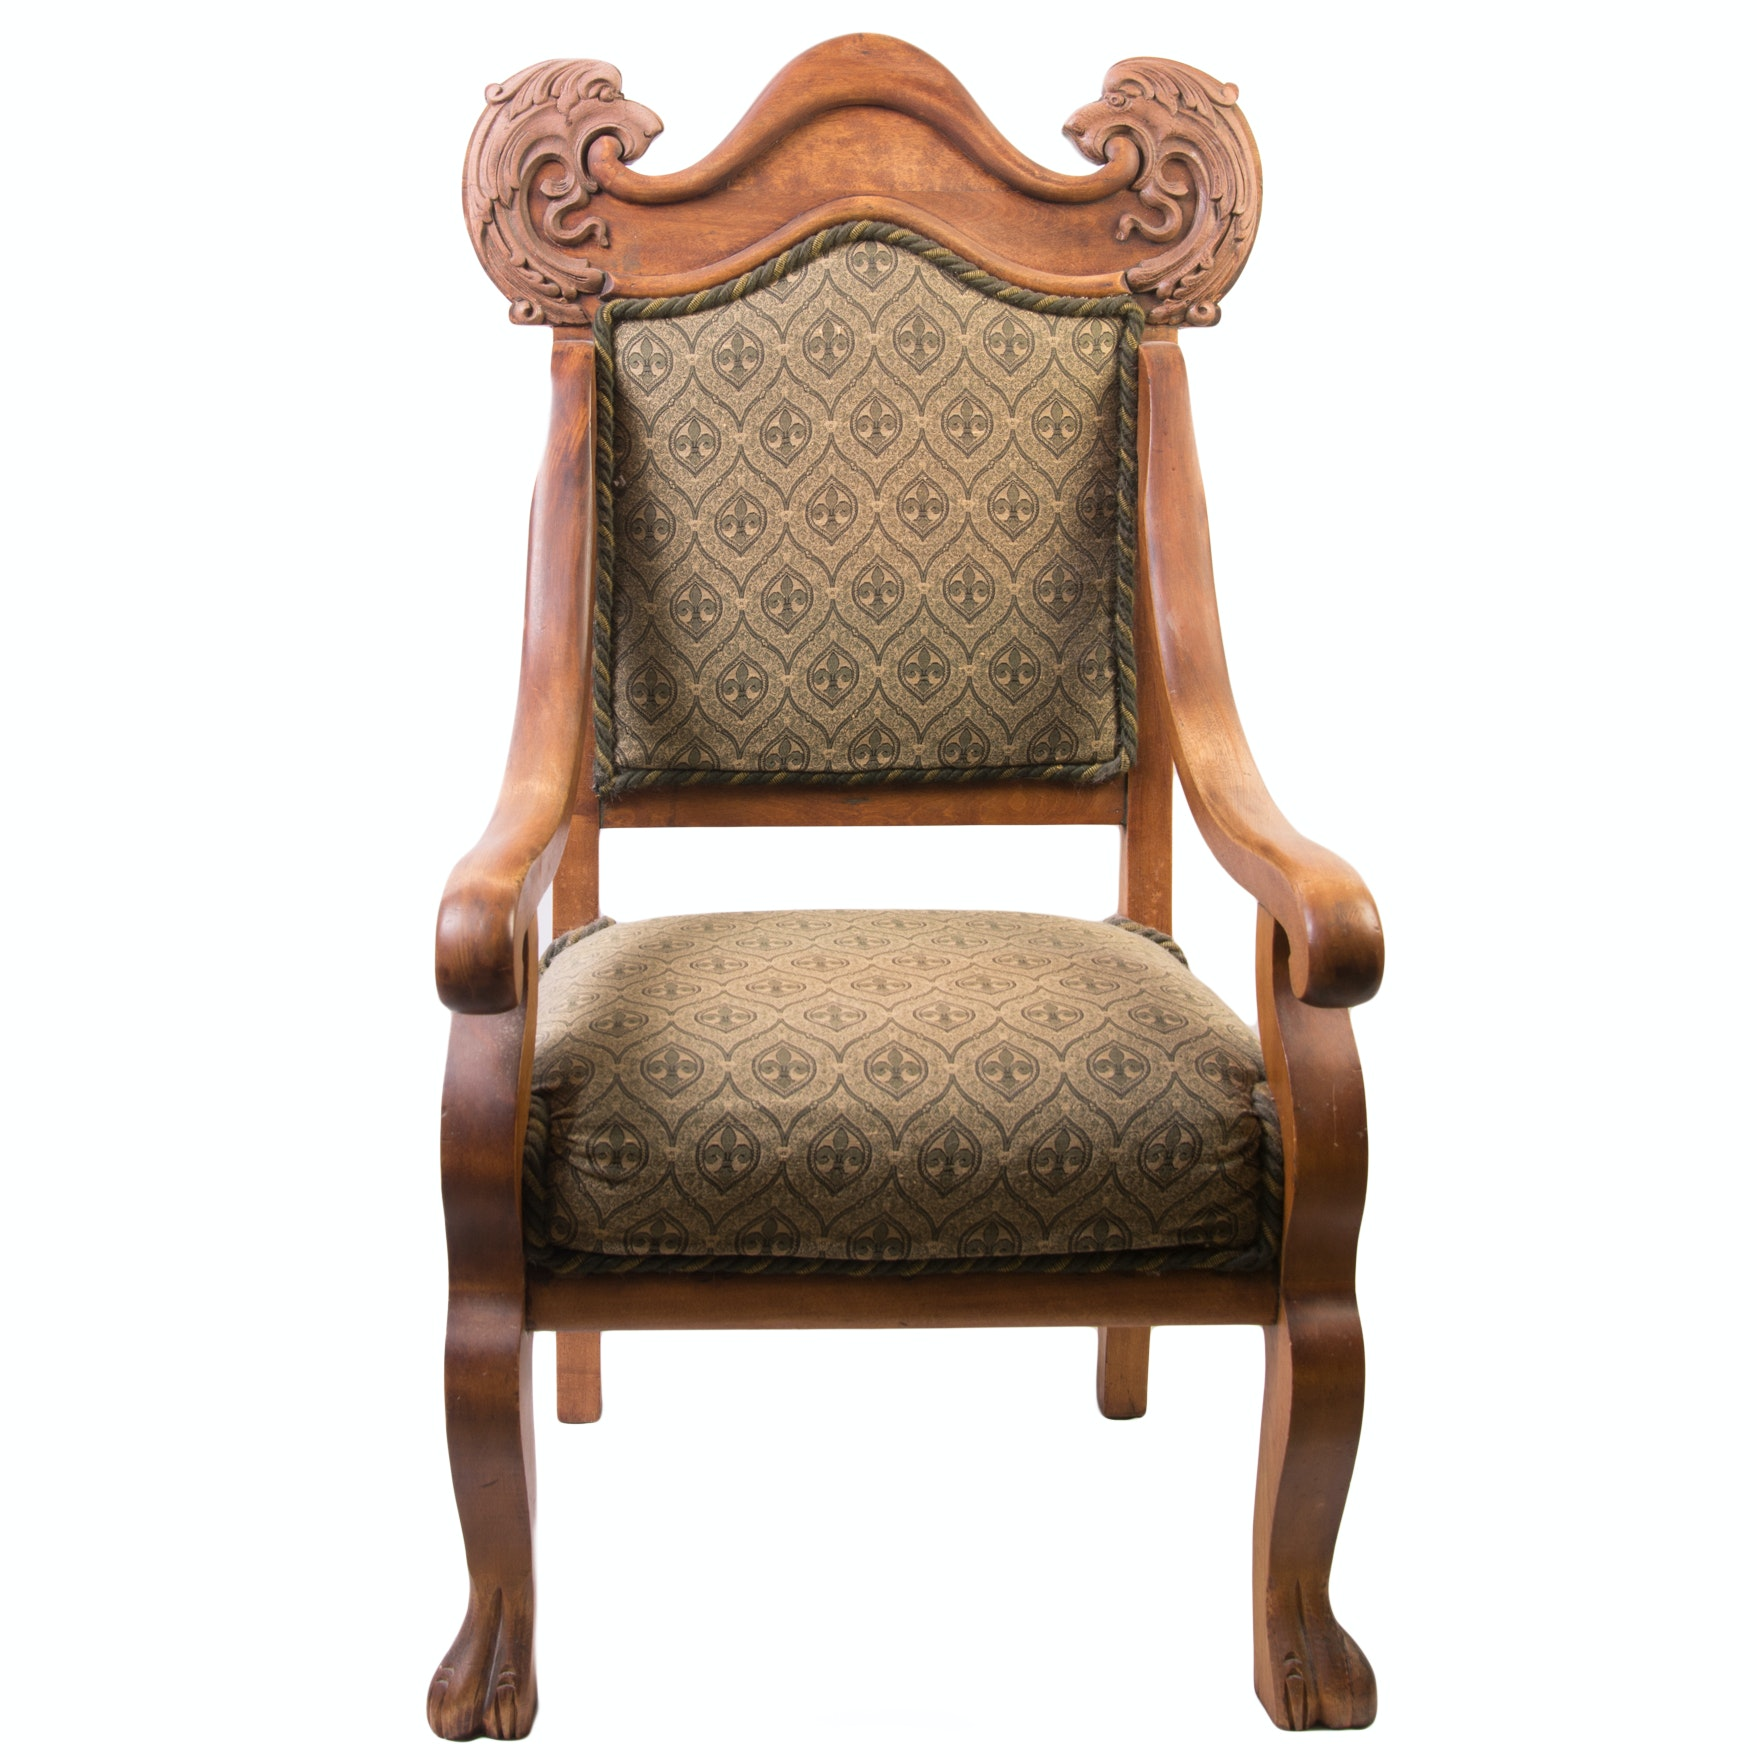 Vintage Renaissance Revival Chair